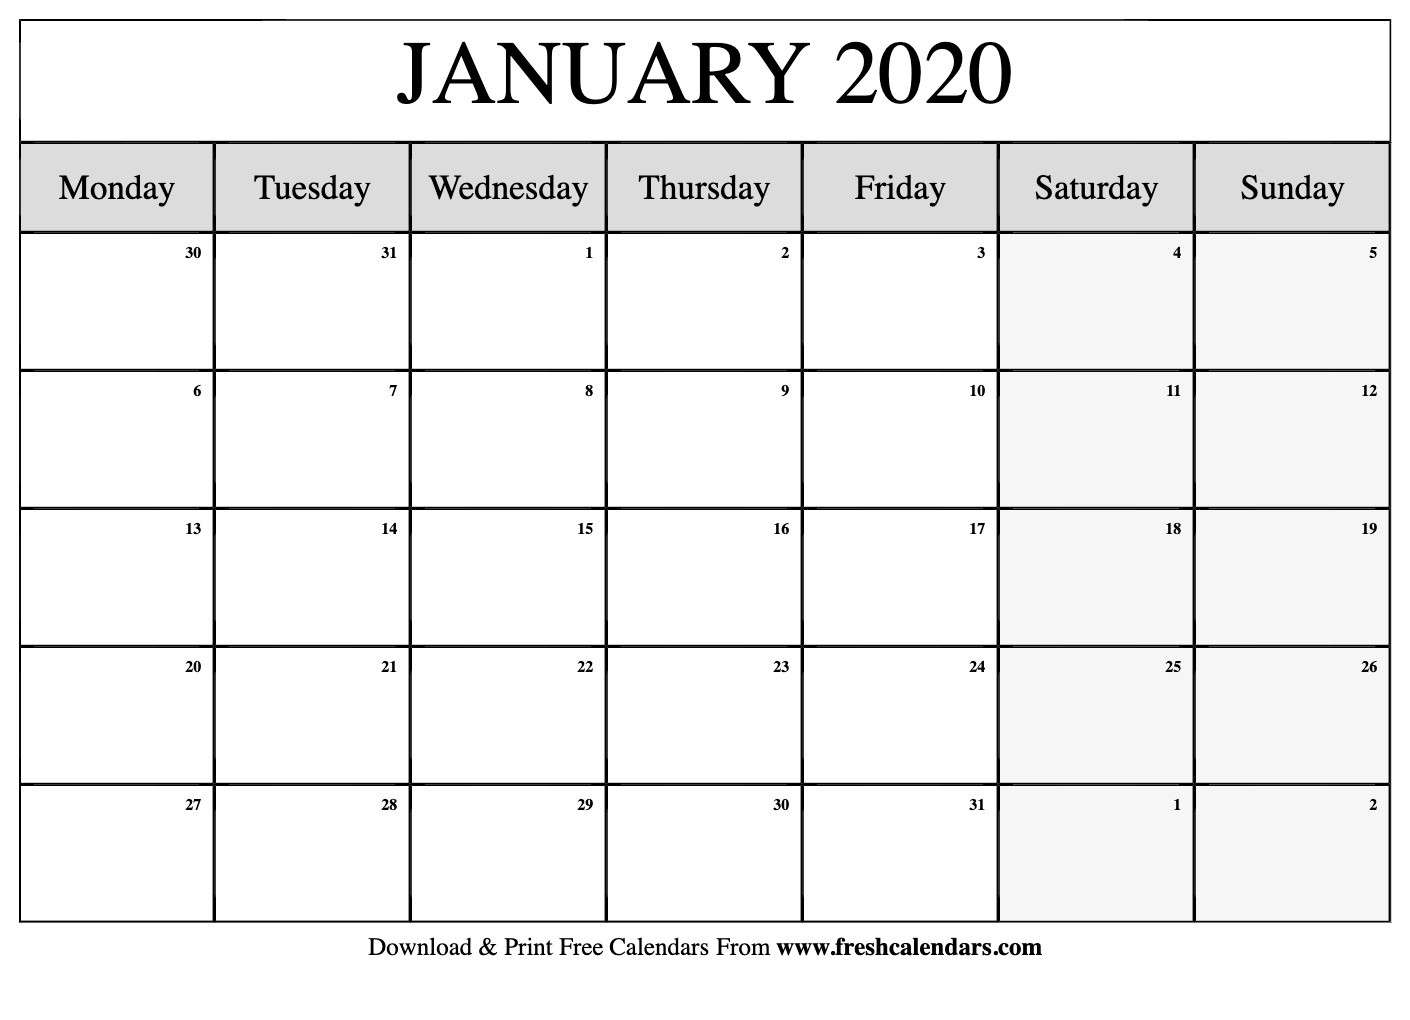 January 2020 Calendar Printable-2020 Blank Calendar Starting-Monthly Calendar Template 2020 Printable Blank Starting Monday